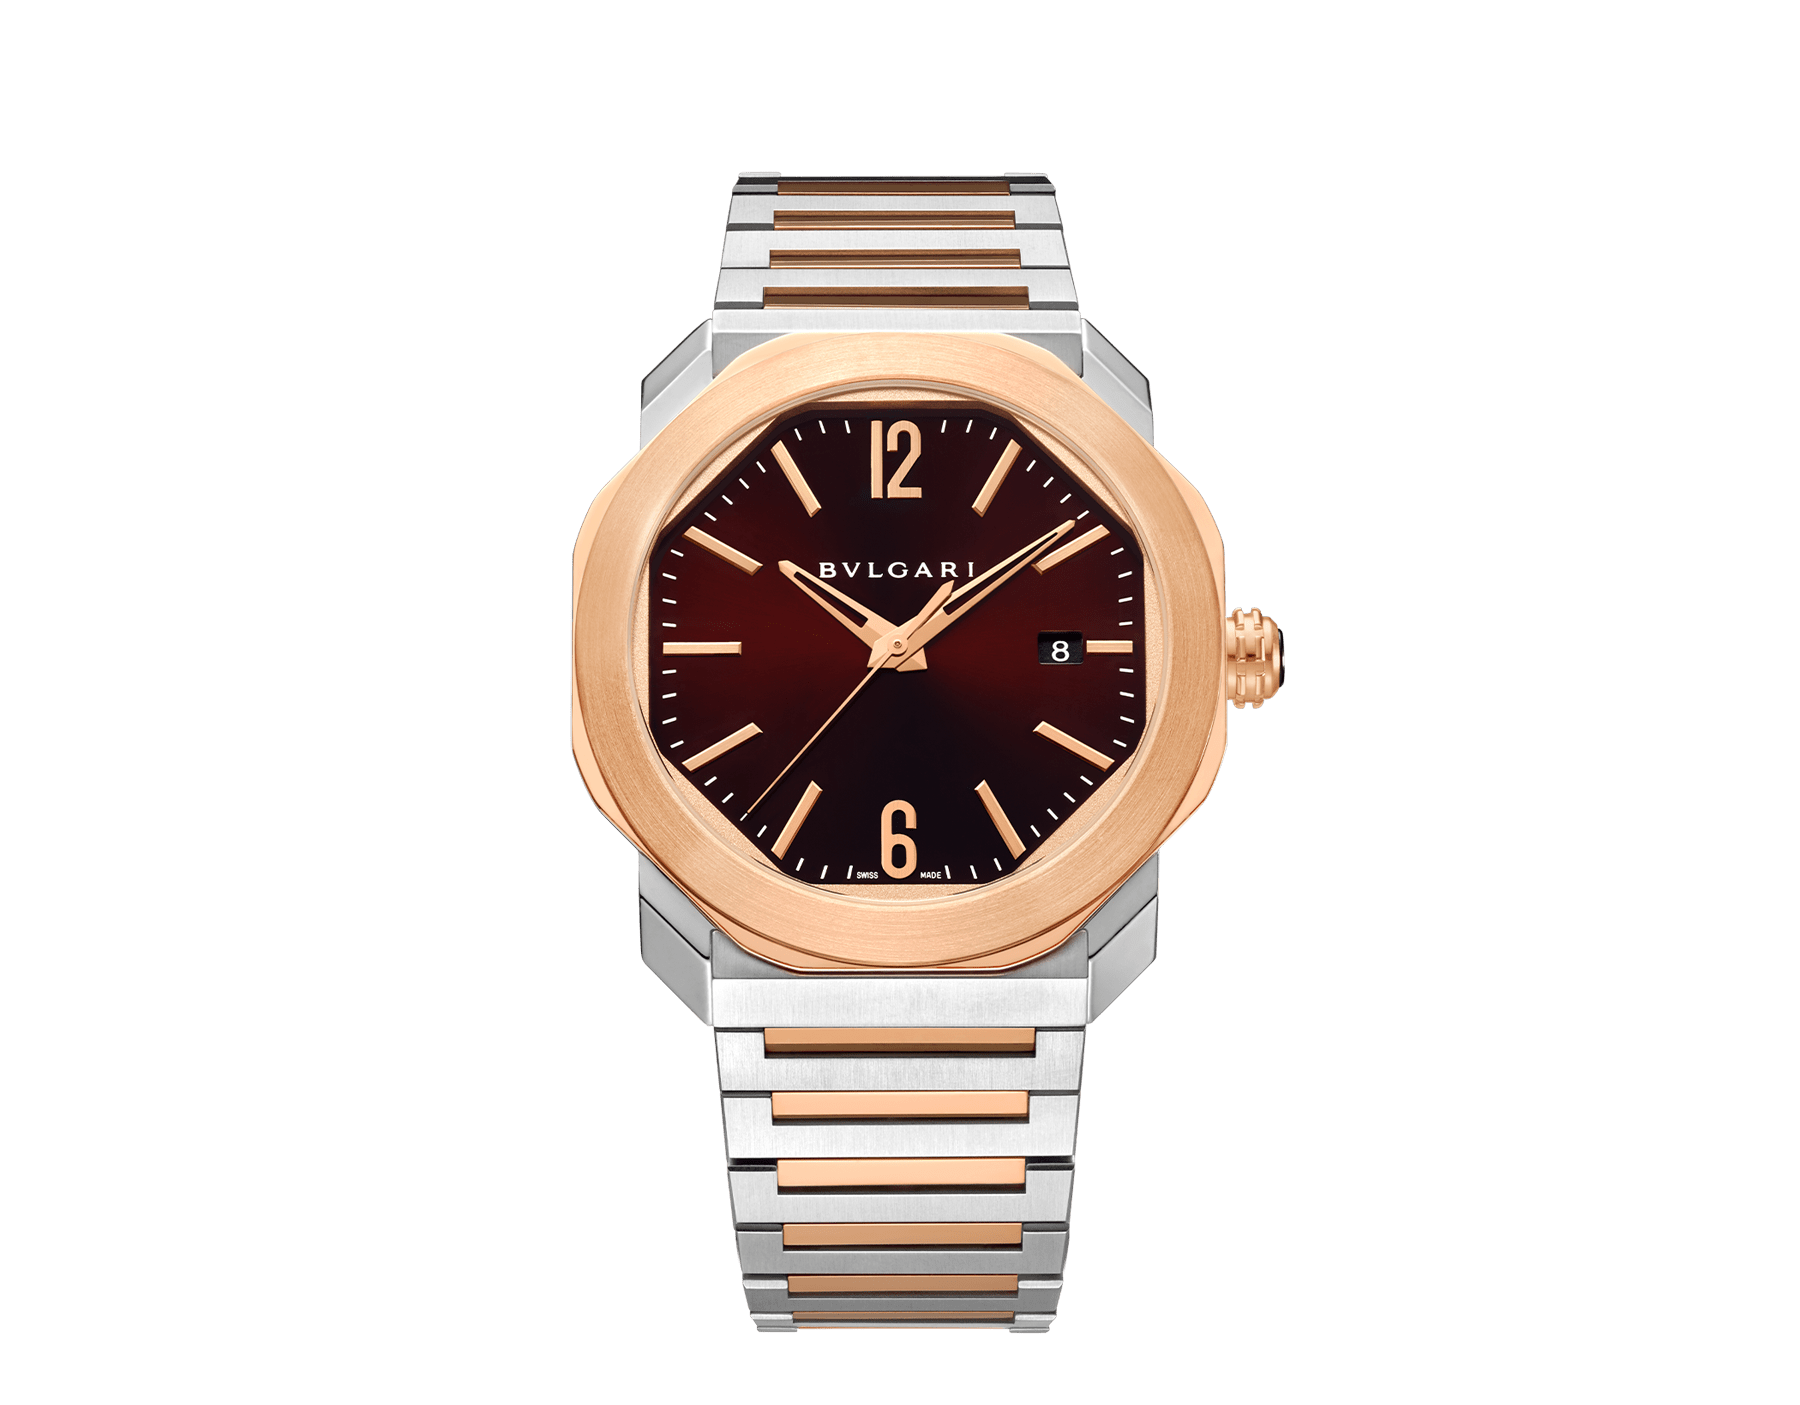 Octo Roma watch with mechanical manufacture movement, automatic winding, 18 kt rose gold and stainless steel case and bracelet, brown dial. 102854 image 1